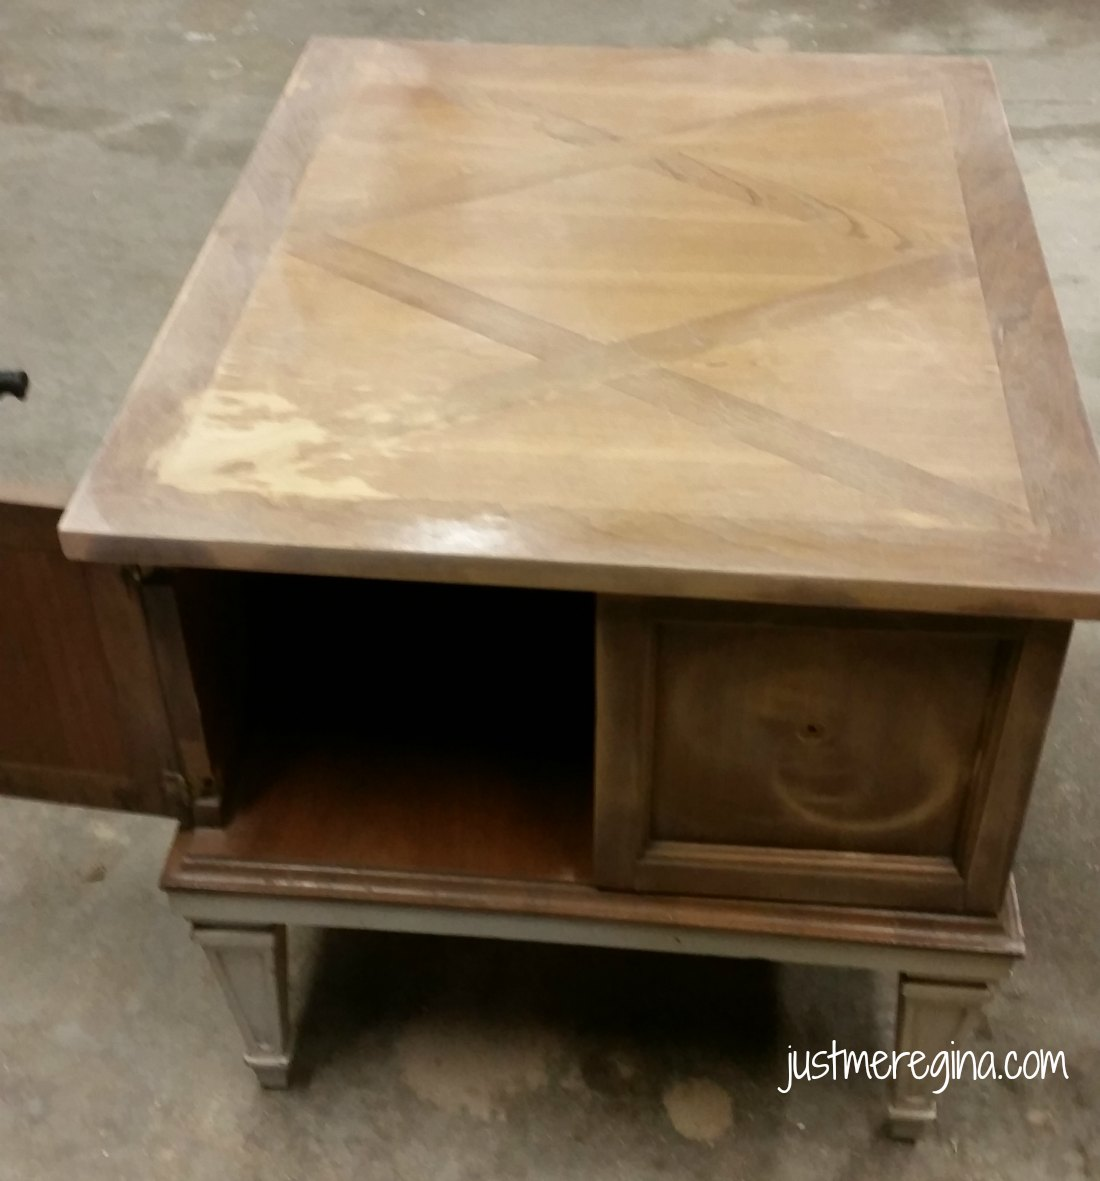 how refinish end tables diy eat travel life turn tired table into the you always wanted refinishing furniture best dog crates for large dogs tall oak nightstand corner bathroom